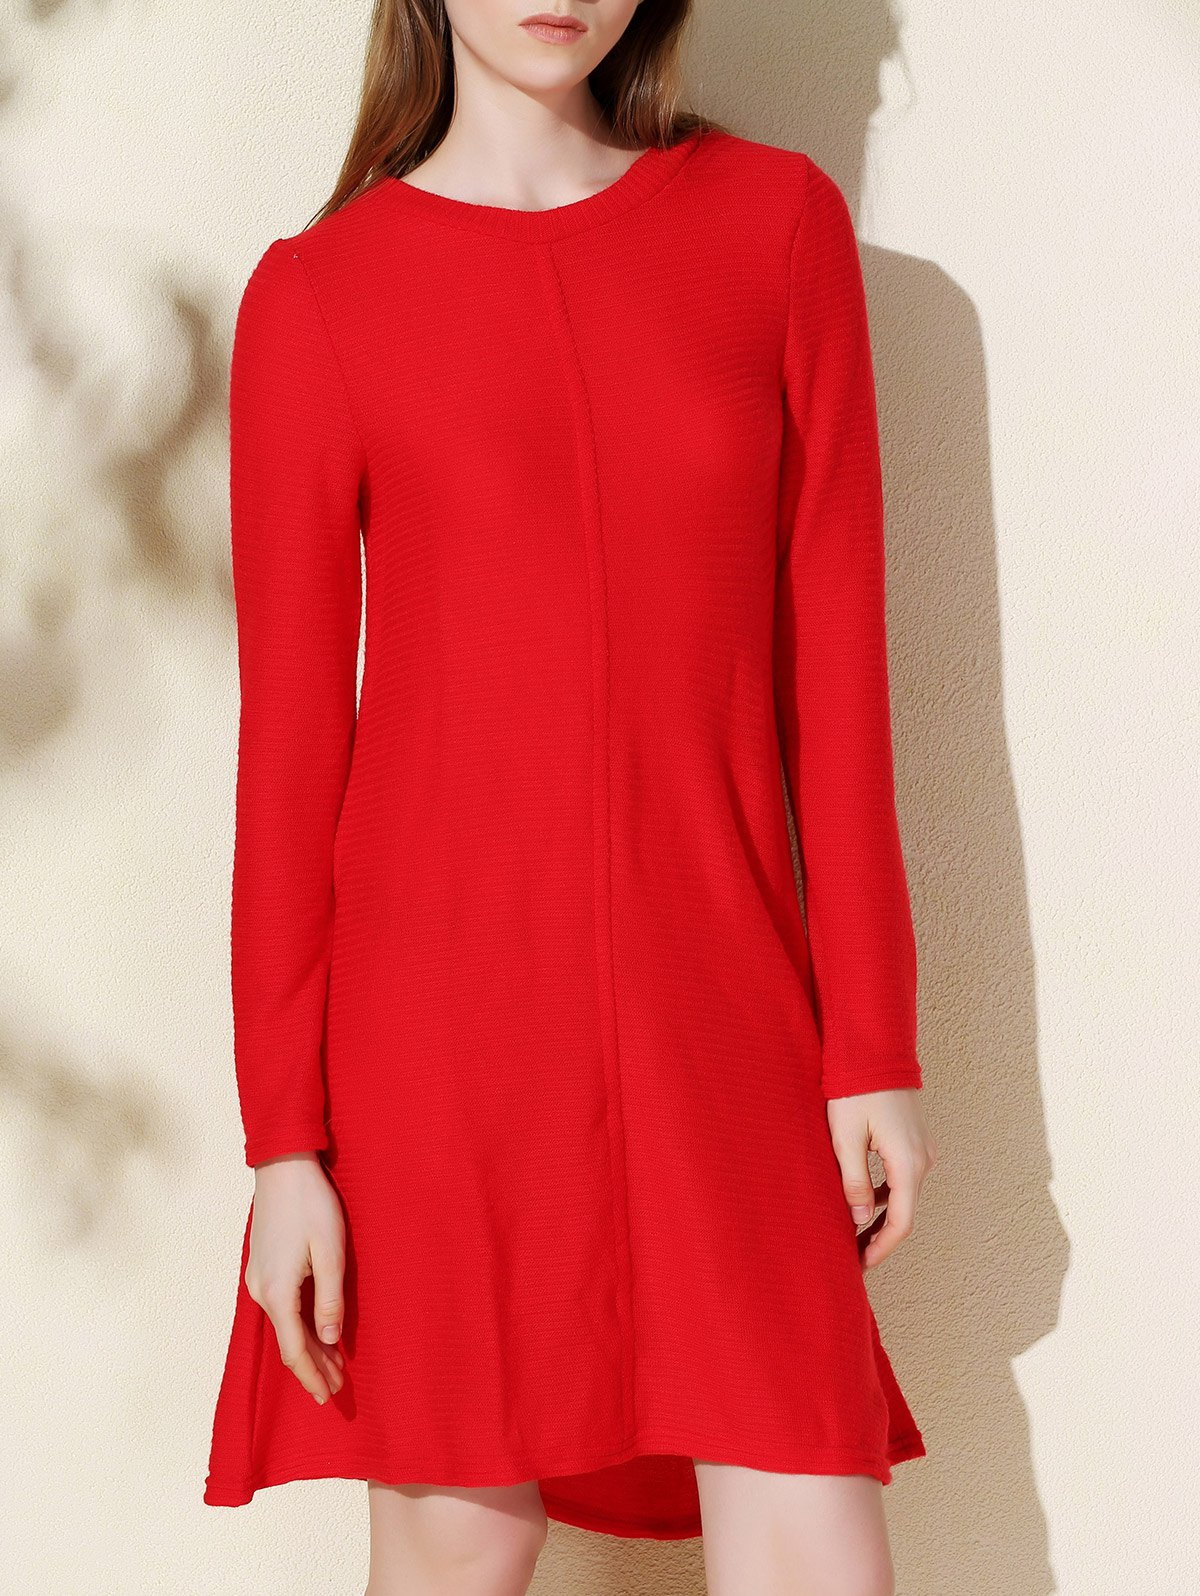 Simple Style Solid Color Round Collar Long Sleeve Knitted Dress For Women - RED XL